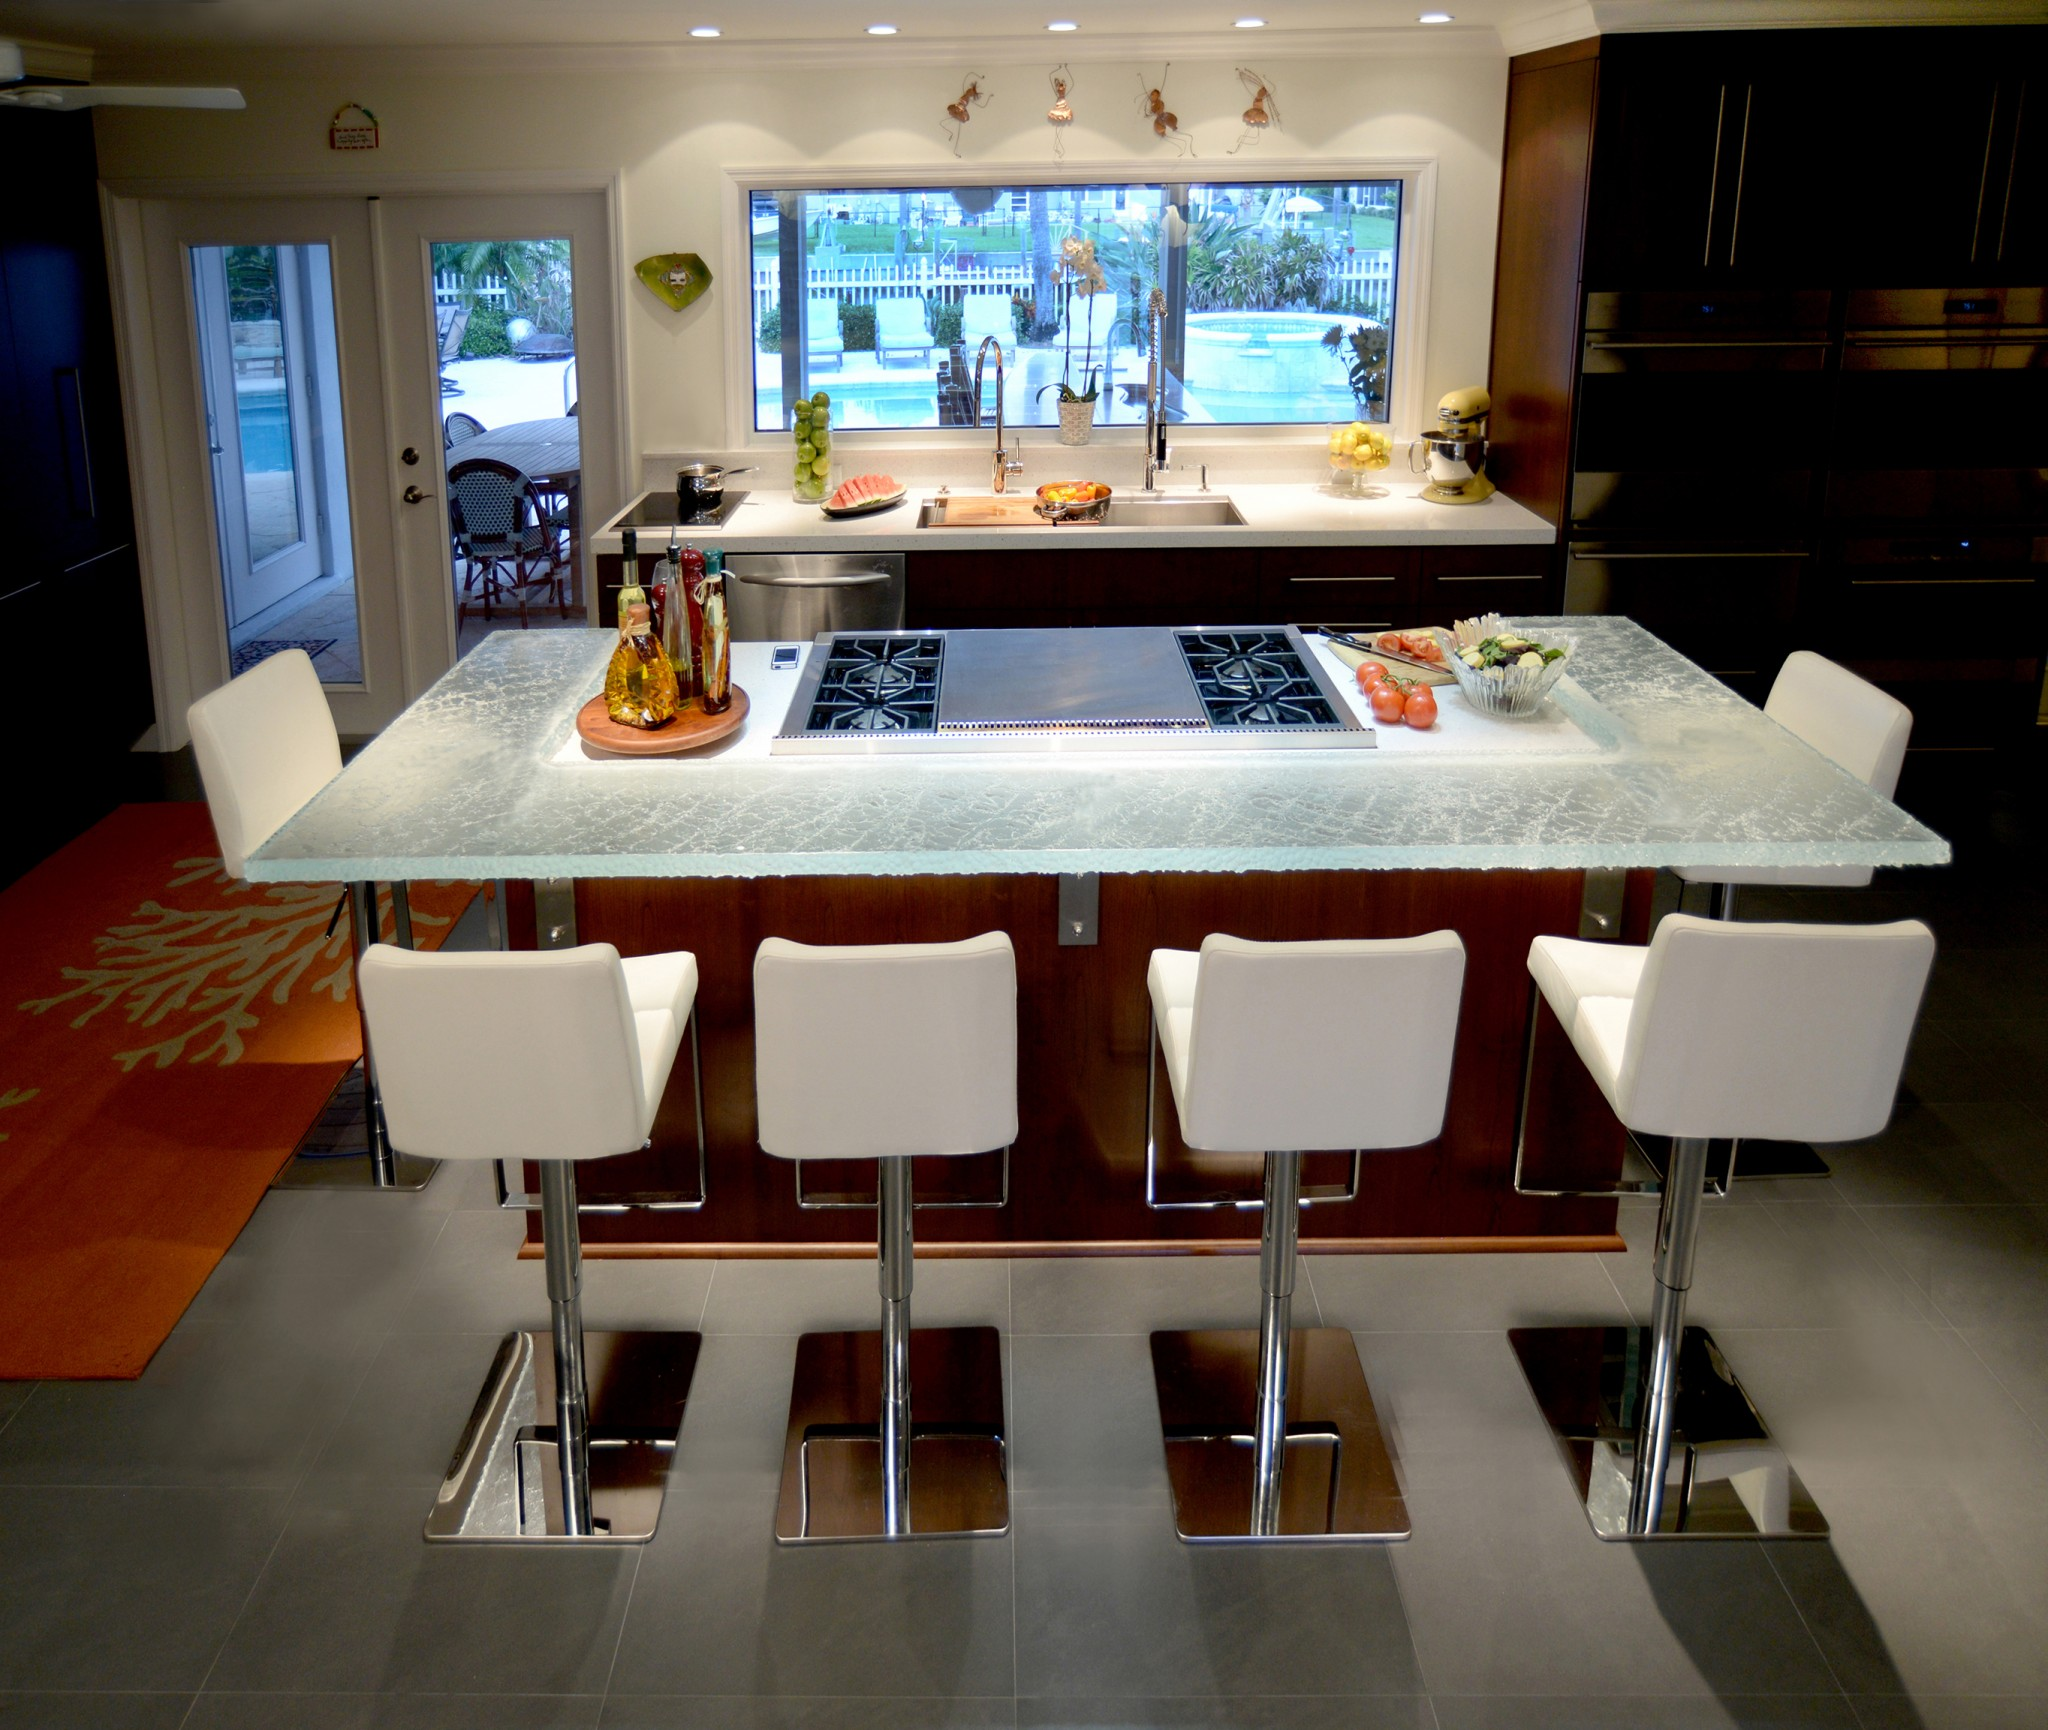 survive your remodel: a guide to formulating the right size kitchen